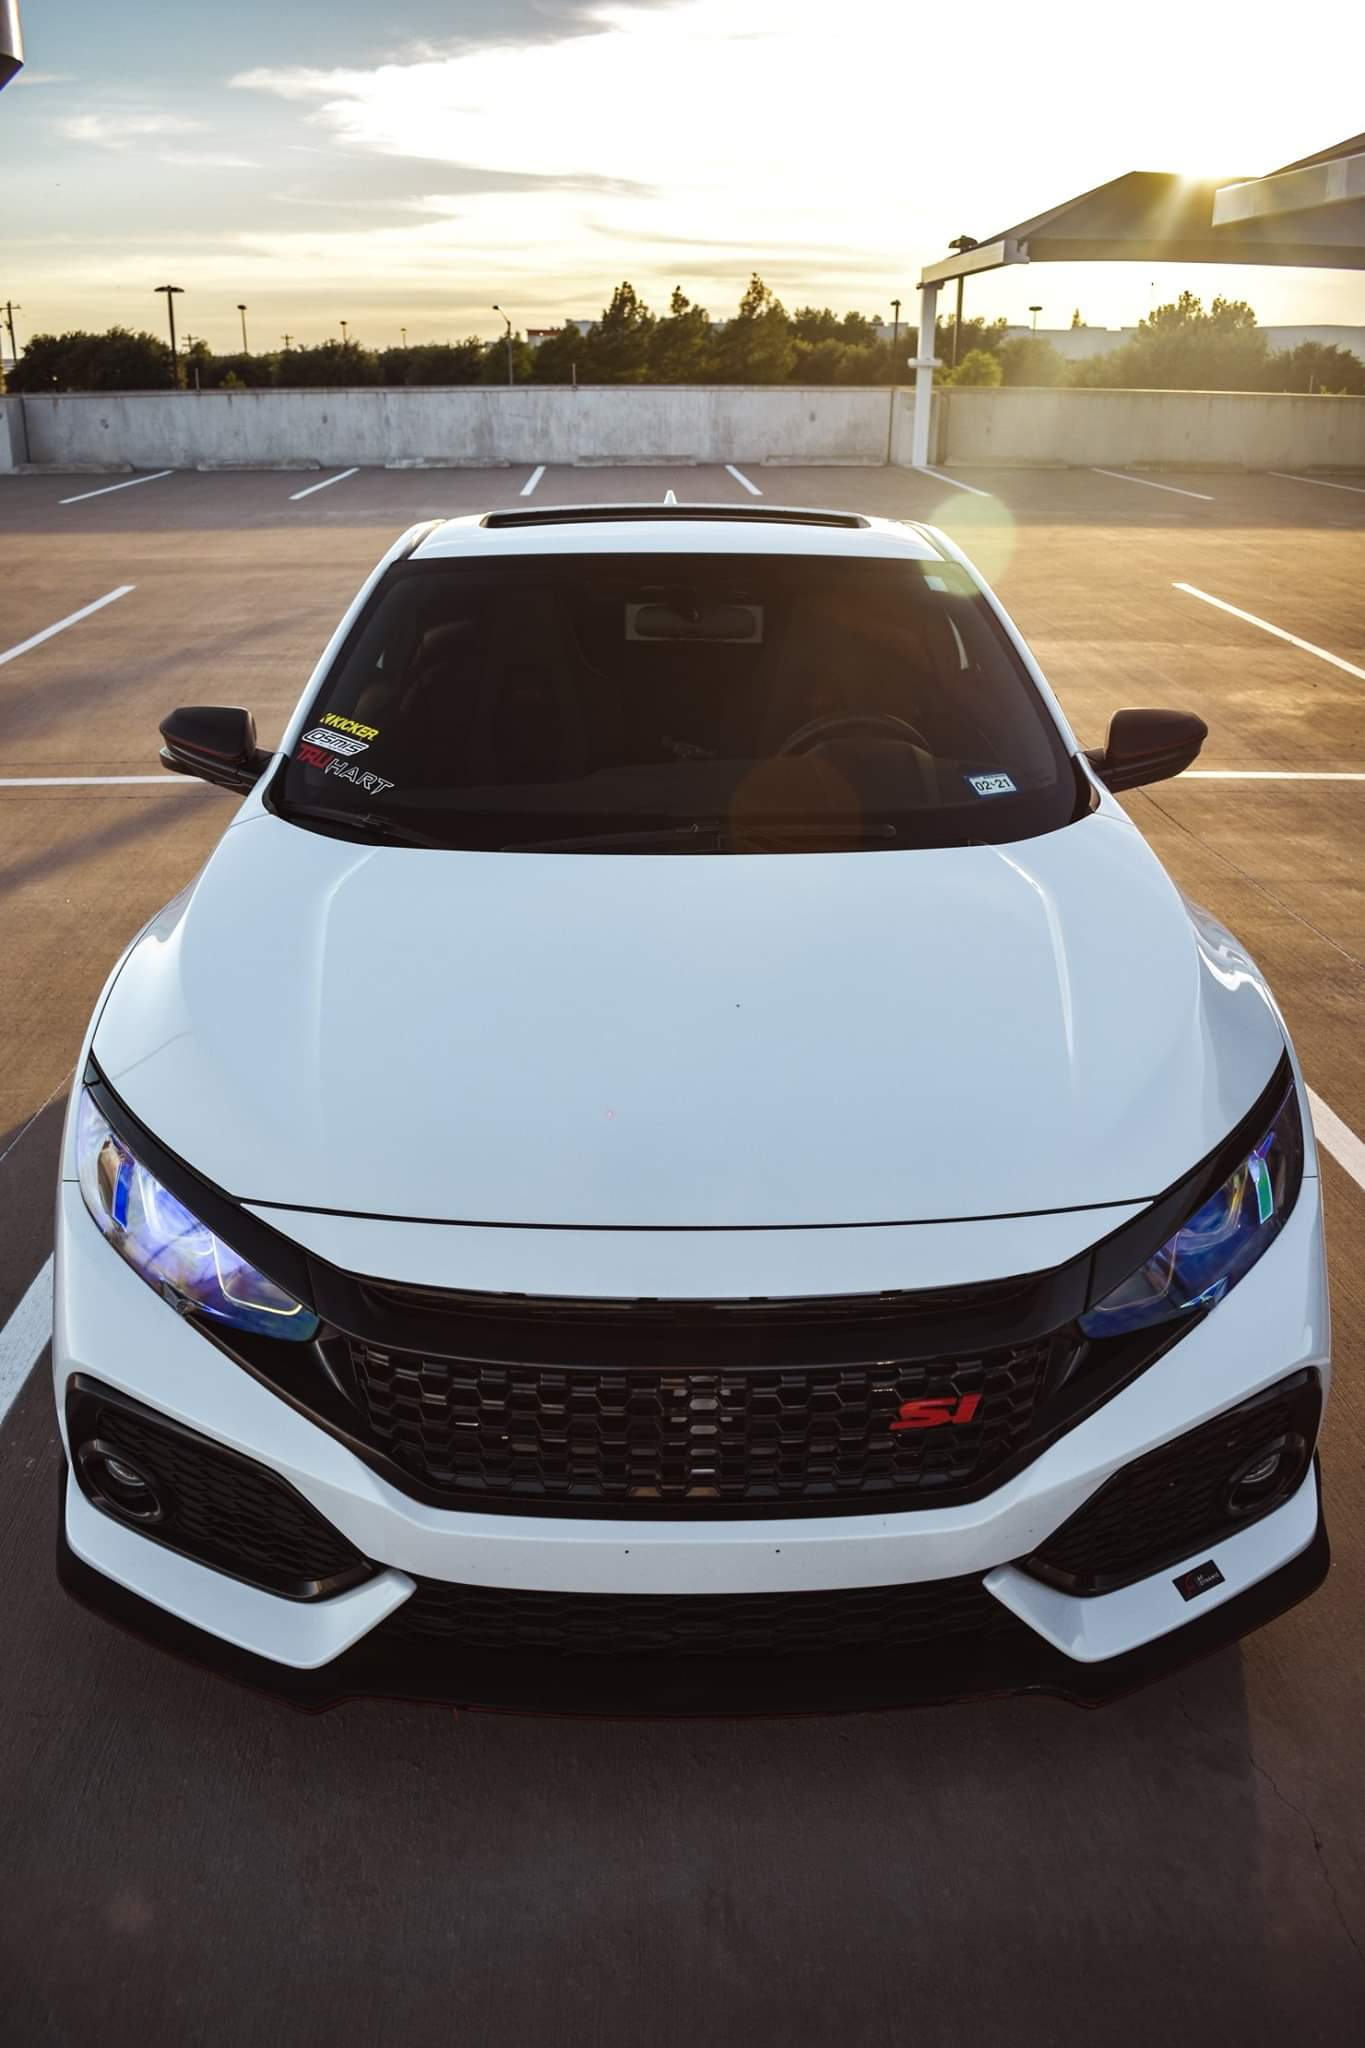 05 Torres Gee 2019 Honda Civic Si pasmag tuner battlegrounds